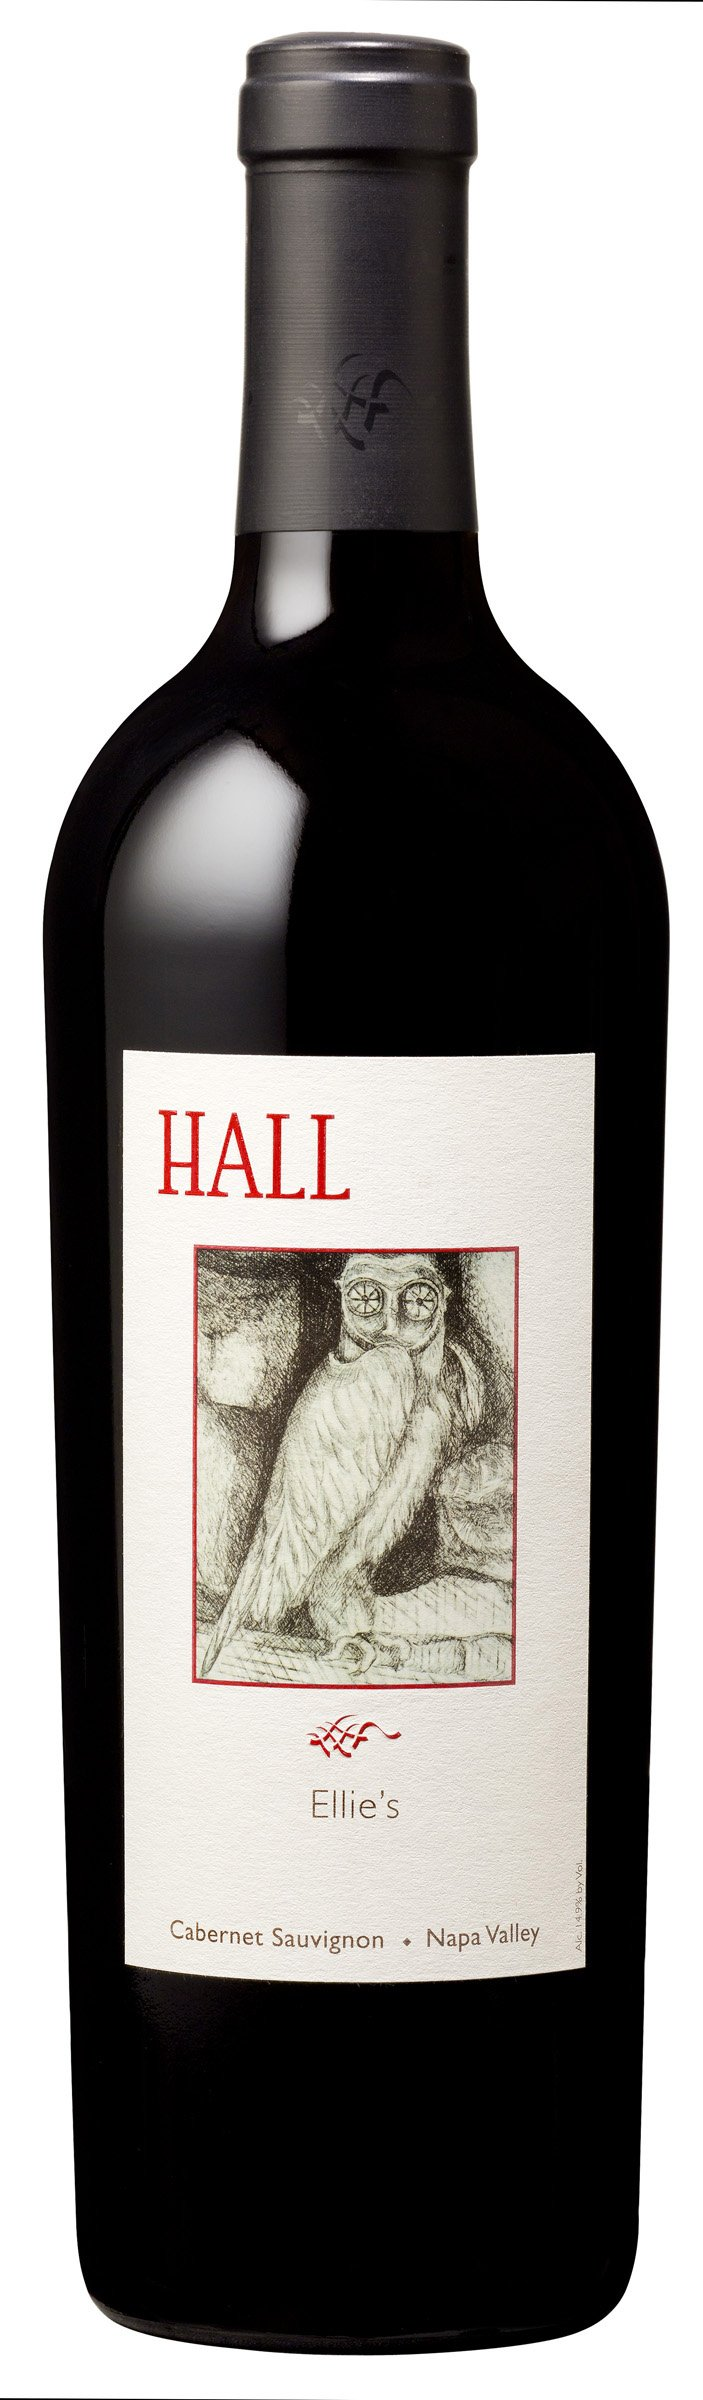 Review 2010 Hall Cabernet Sauvignon Napa Valley Ellie S